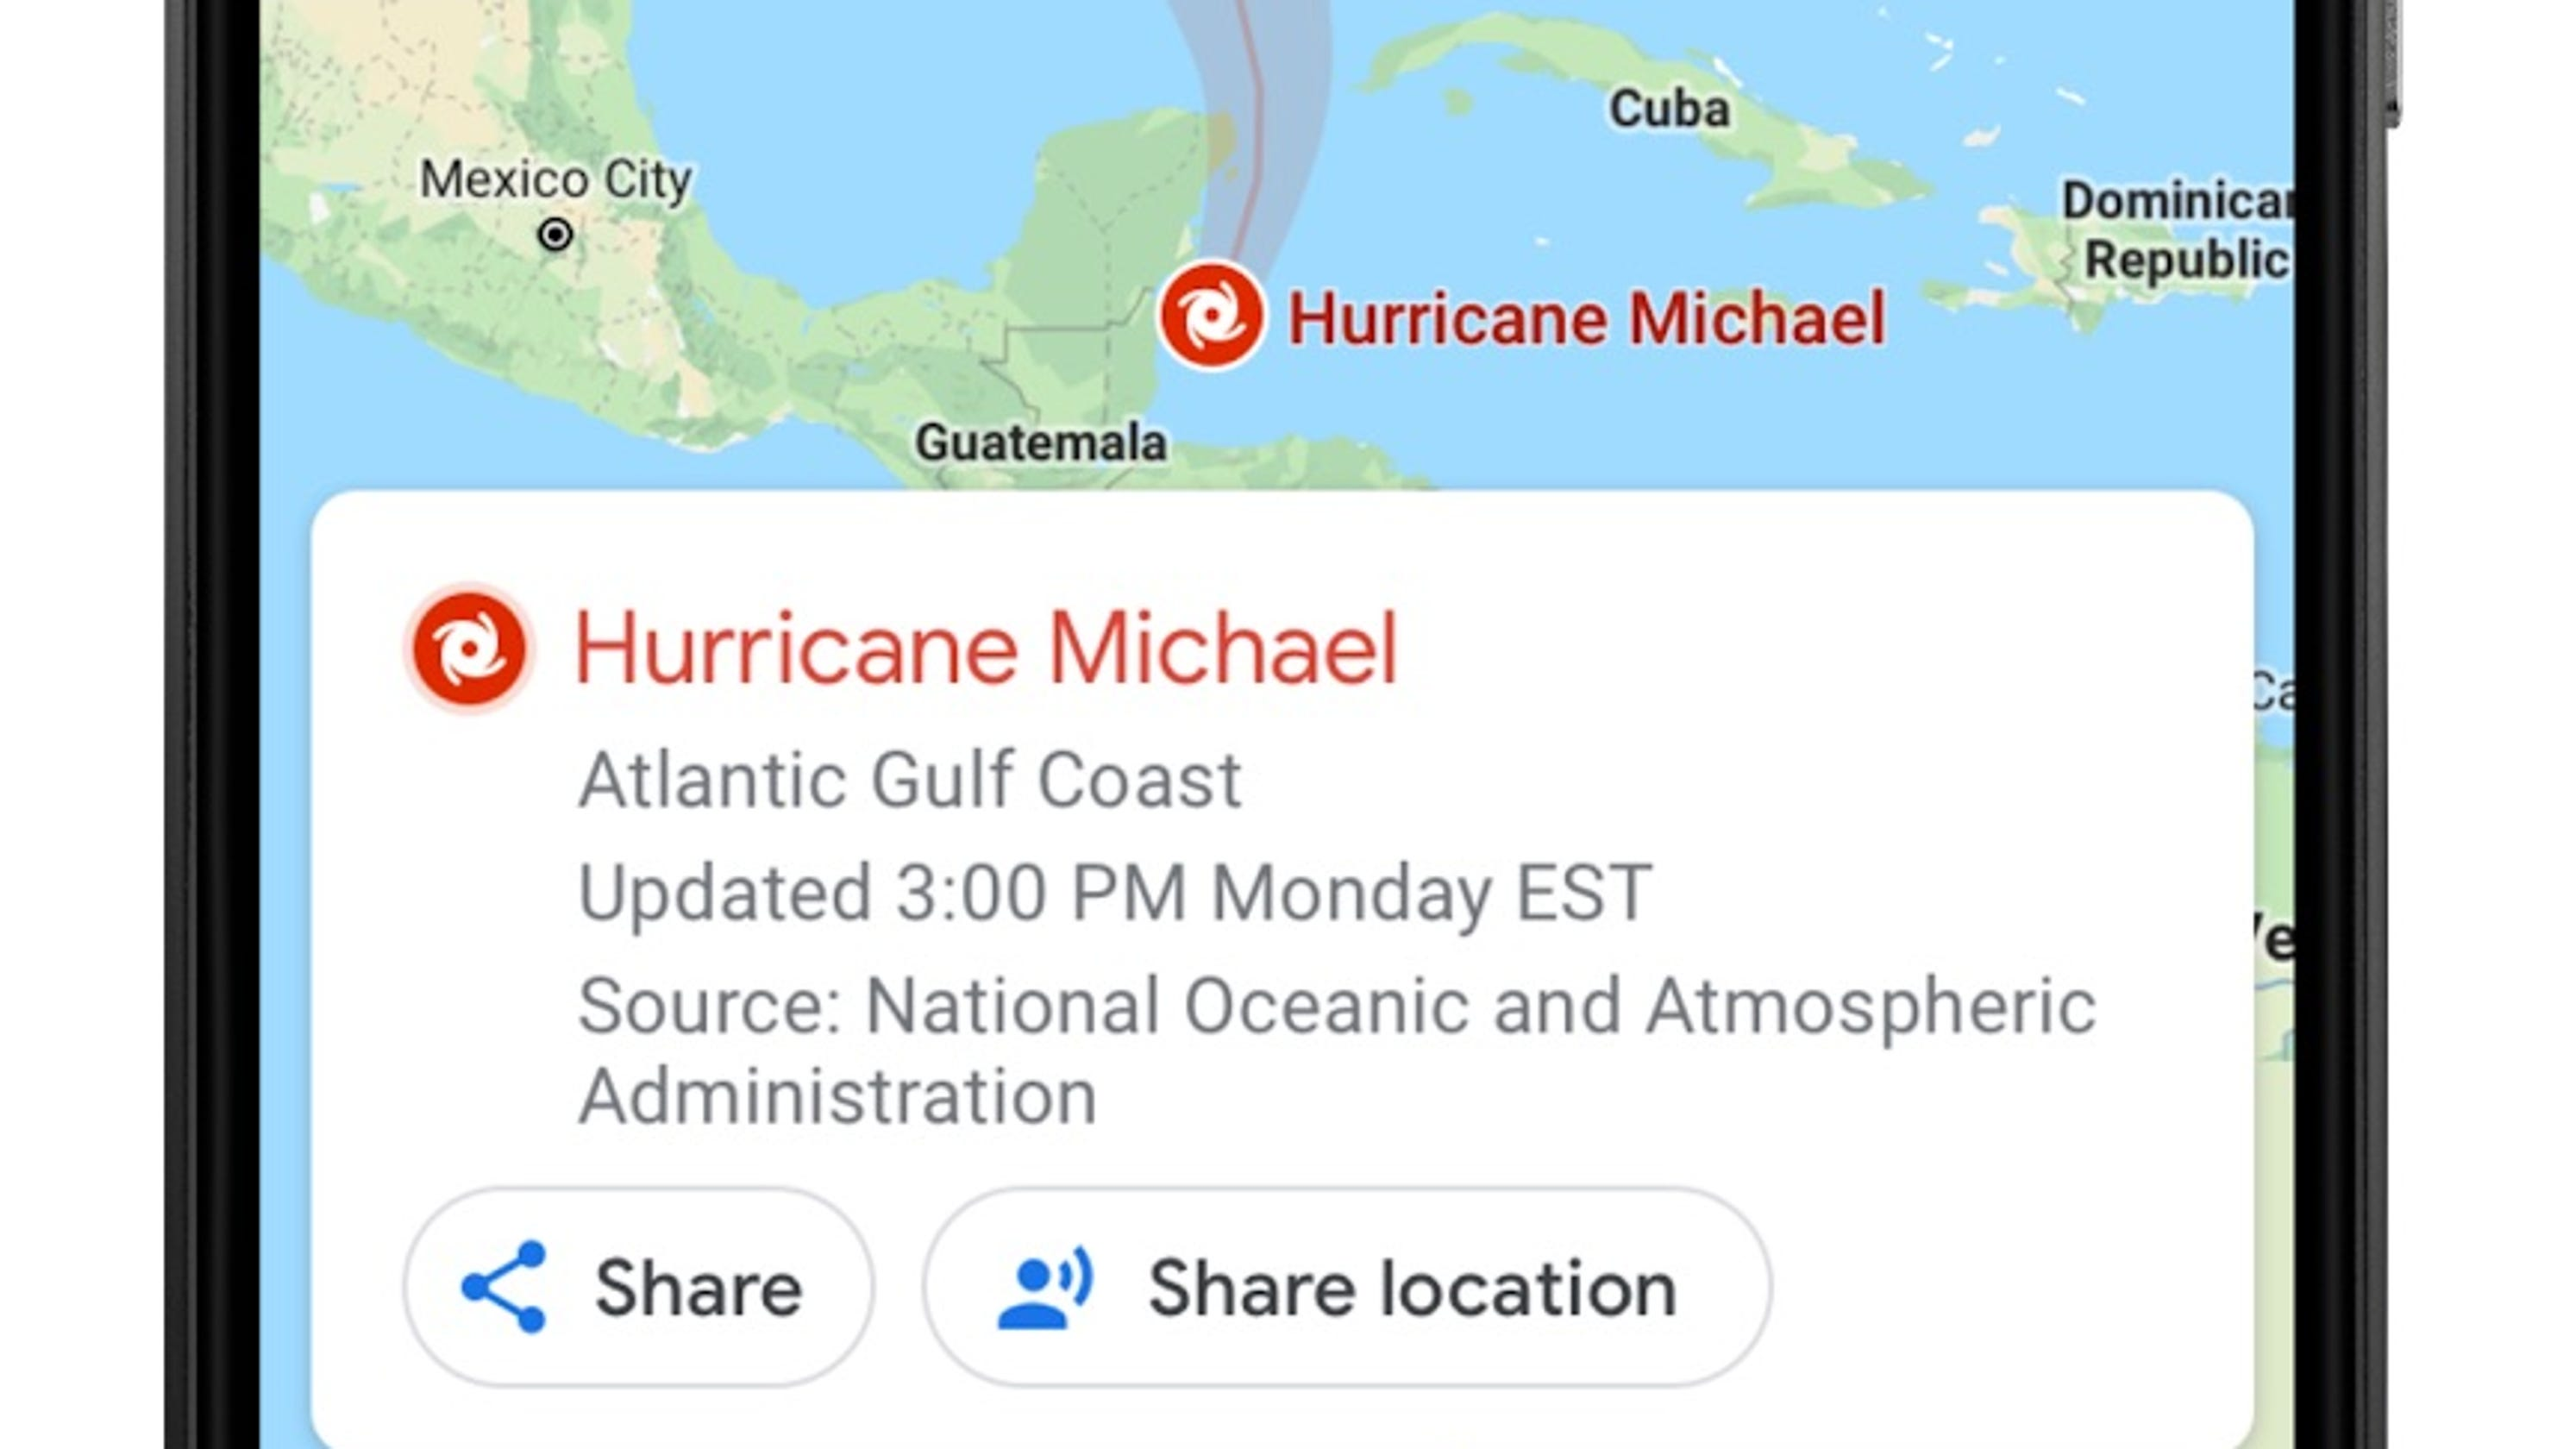 Google Maps adds tools to help you survive a hurricane ... on google map northern hemisphere, google map grand teton, google map nicaragua, google map tobago, google map montserrat, google map south sudan, google map new england, google map central african republic, google map central america, google map macedonia, google map canada, google map micronesia, google map india, google map managua, google map maryland, google map northern mariana islands, google map louisiana, google map antigua and barbuda, google map norfolk island, google map suisse,